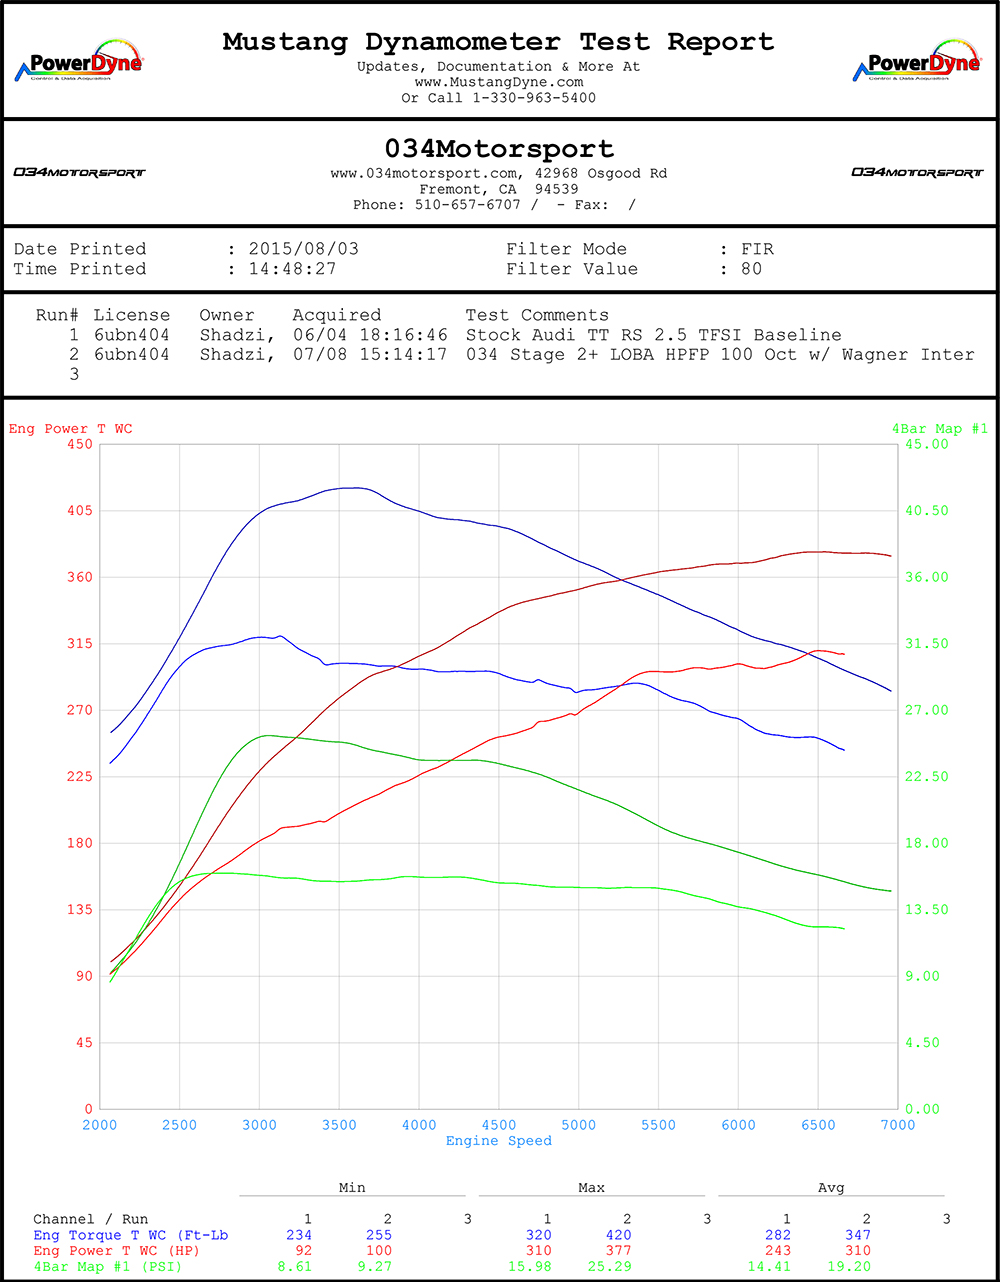 034Motorsport Stage 2+ (HPFP) Audi TT RS 2.5 TFSI Performance Software & Tuning - 100 Octane Dyno